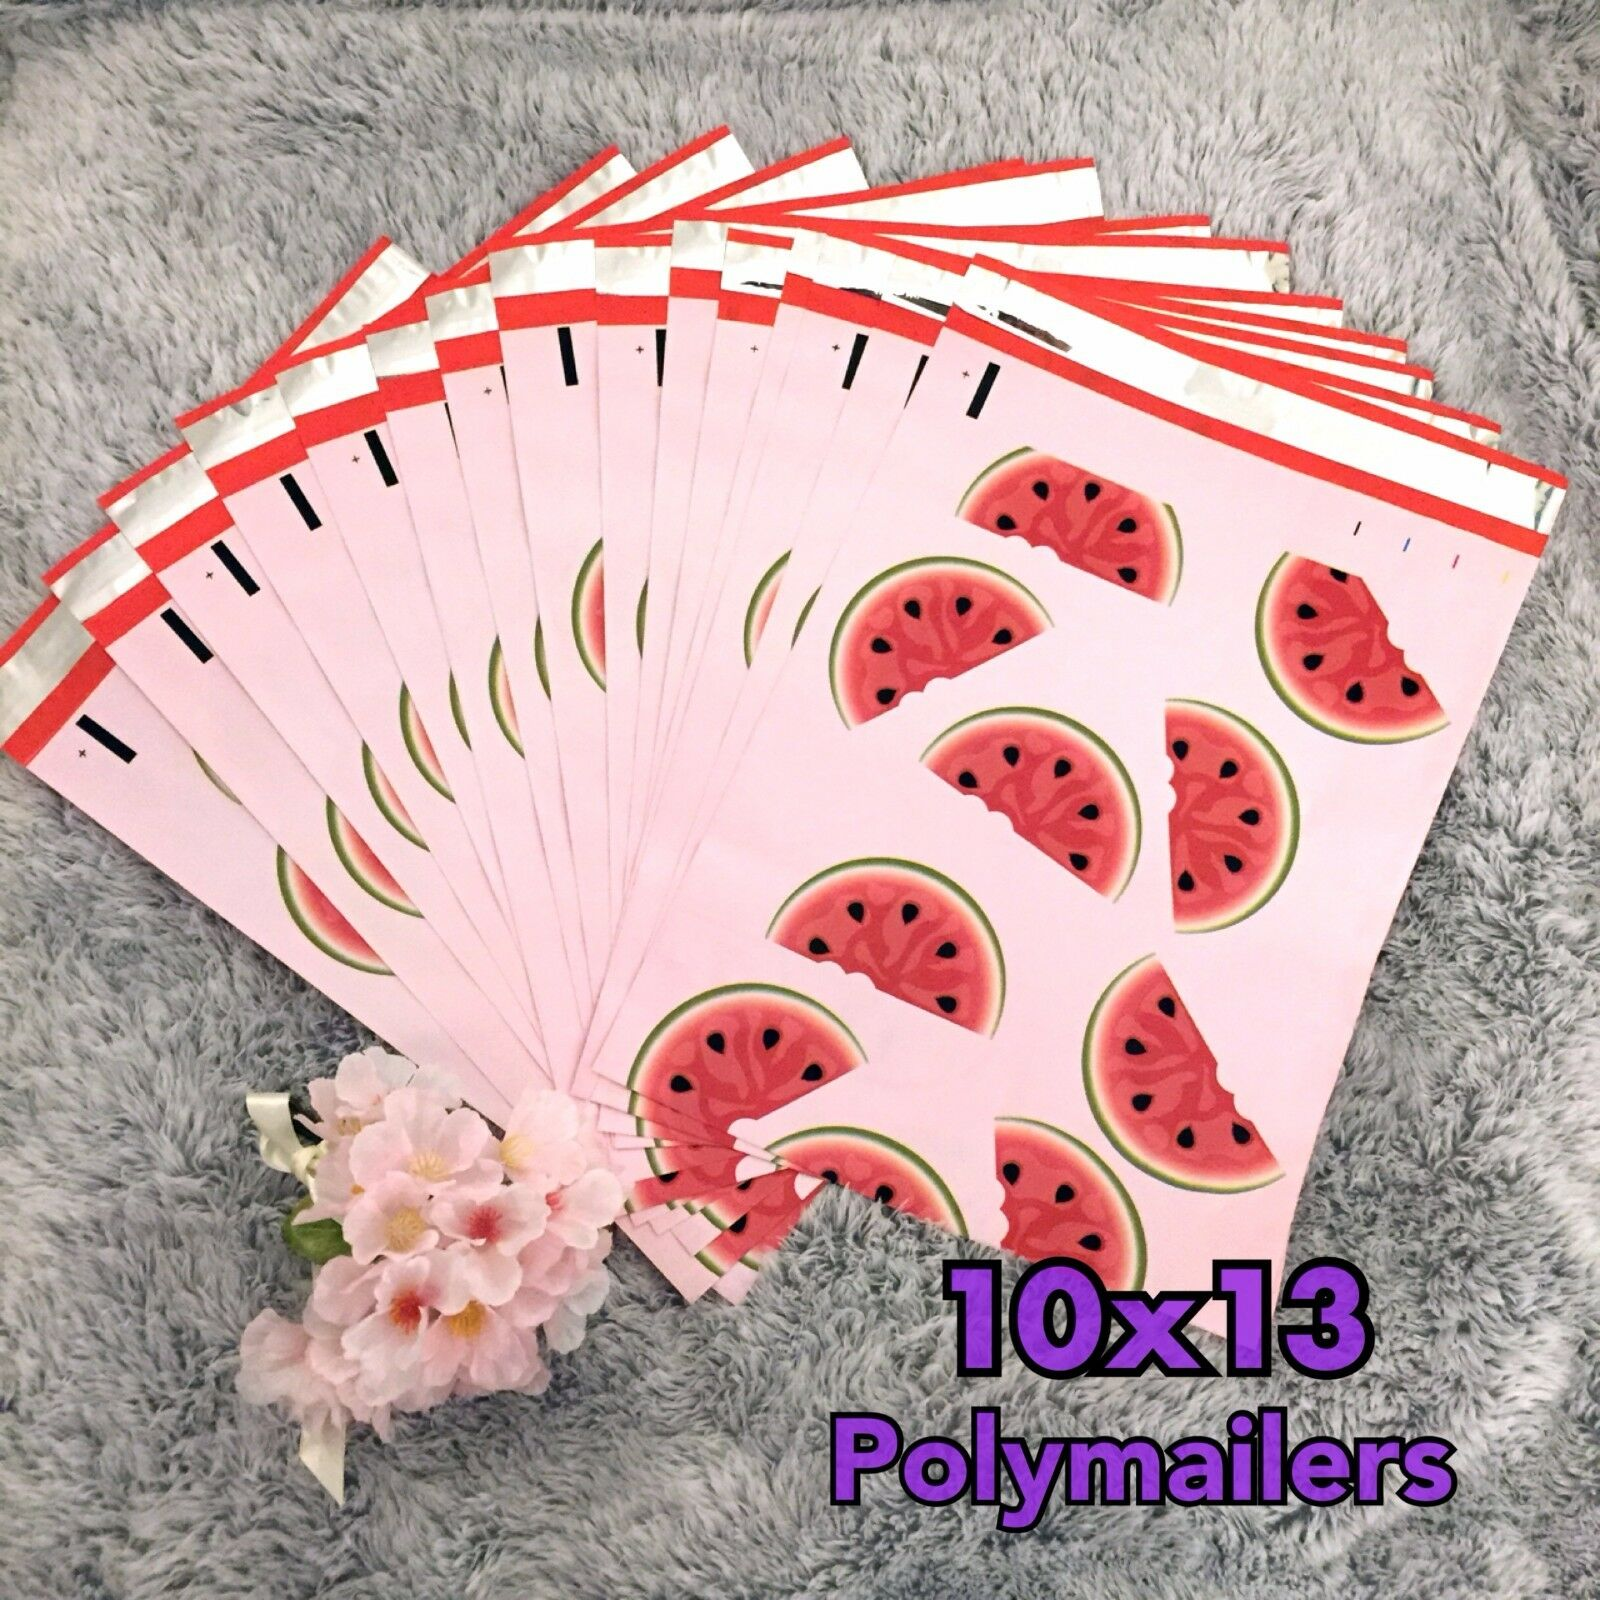 30 DESIGNER Printed Poly Mailers 10x13 Envelopes Bags Watermelon